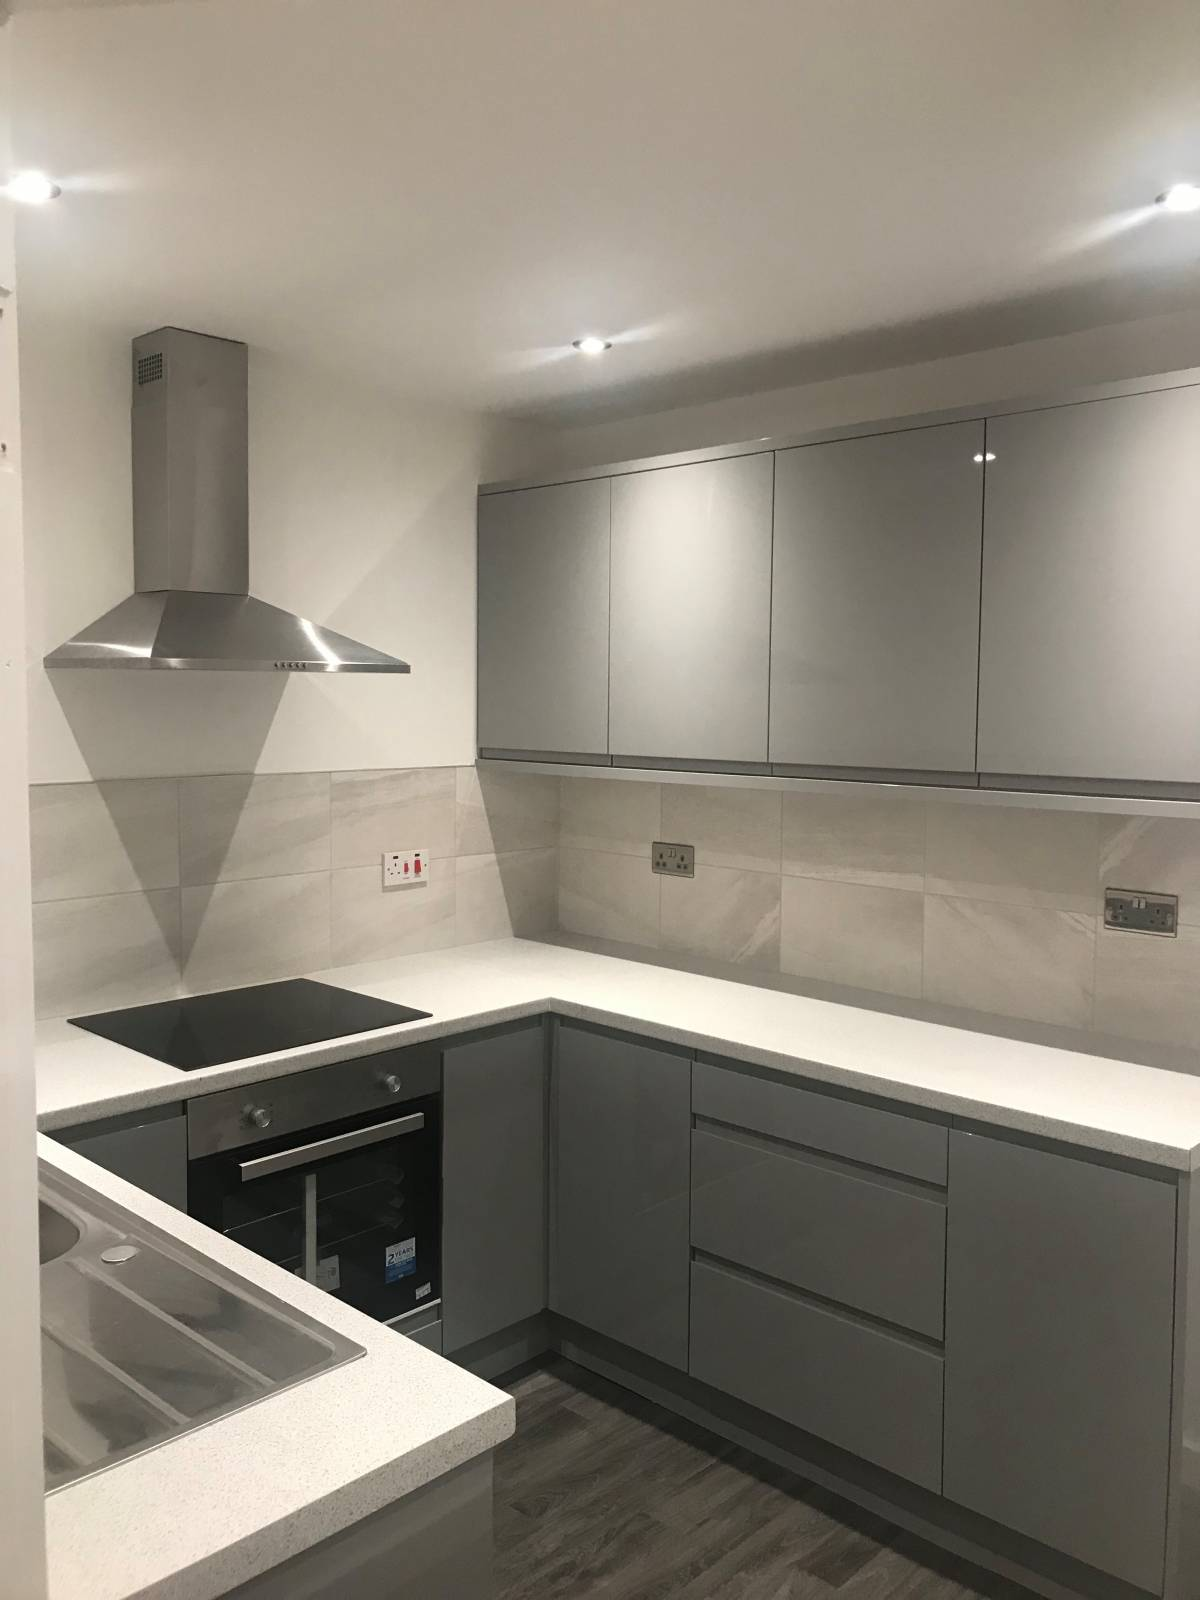 *** Mapperley Park *** HIGH QUALITY. Fully refurbished. New Modern Kitchen. New boiler, radiators, new doors and large living room. USB port-plugs – 5 mins walk Notts City Centre. Gated with electric gates